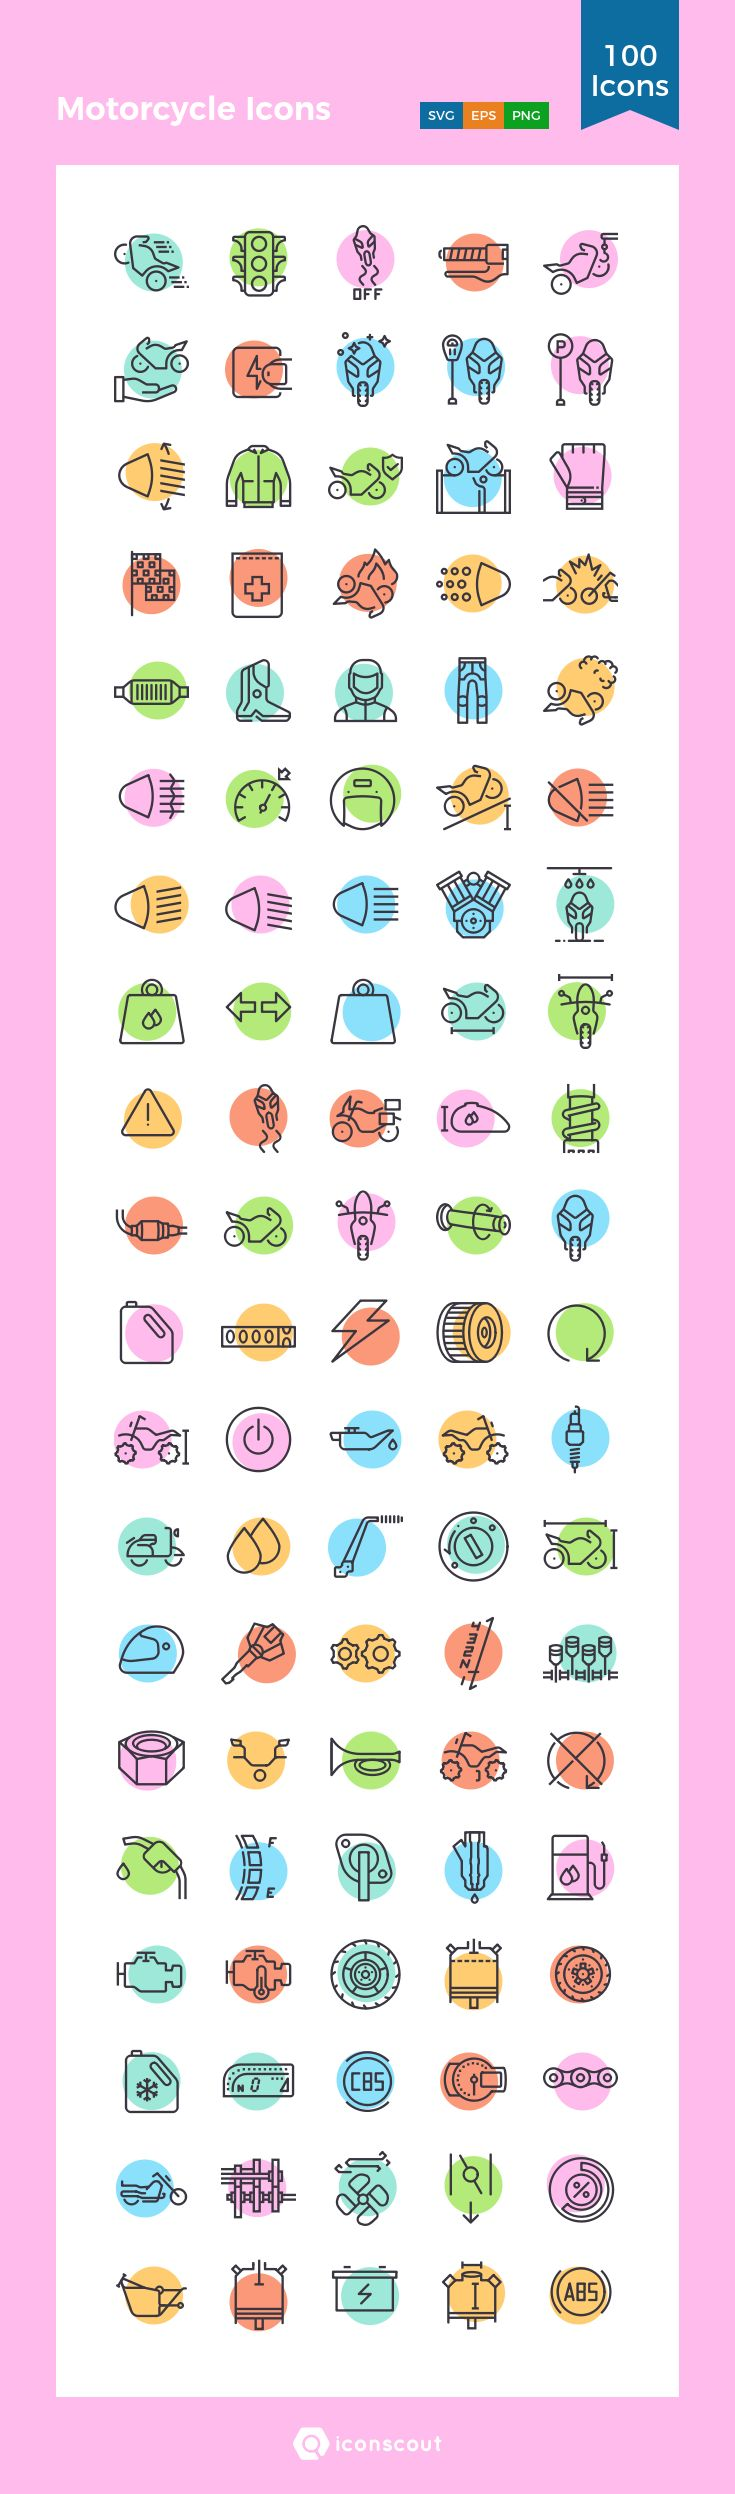 Motorcycle Icons  Icon Pack - 100 Line Icons